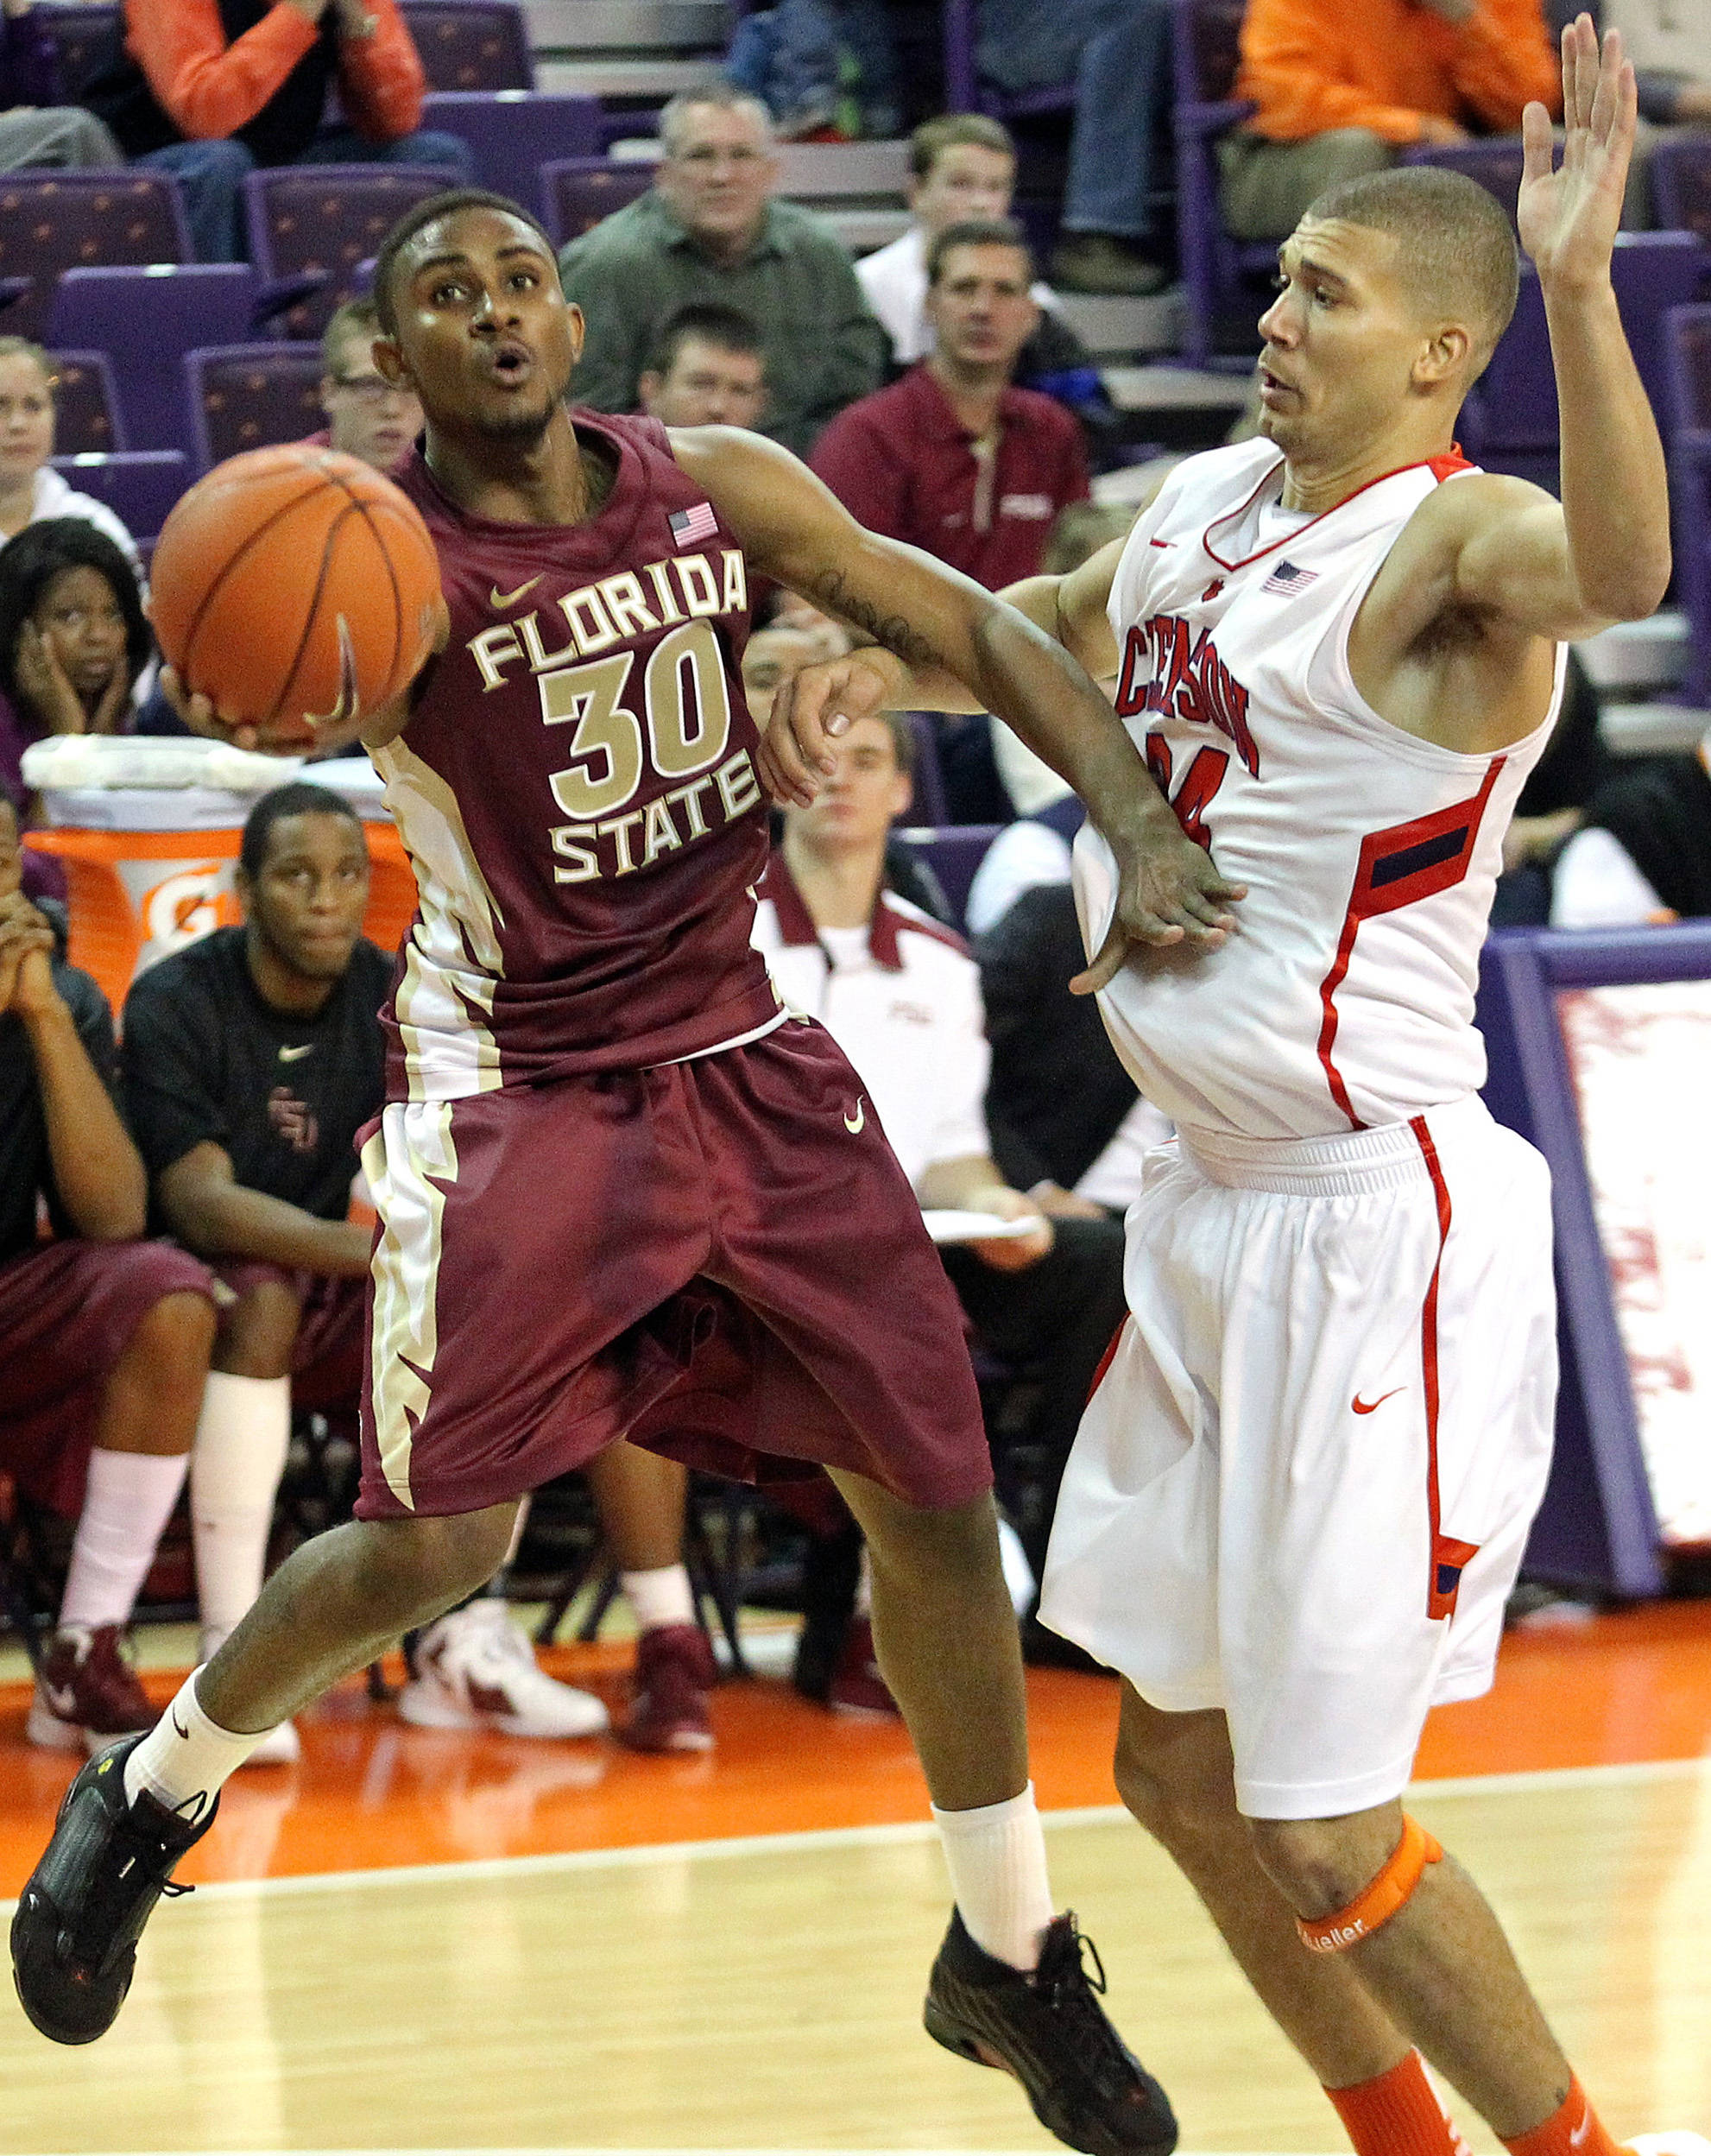 Florida State's Ian Miller, left, flips the ball to the basket in front of Clemson's Milton Jennings during the second half. (AP Photo/Anderson Independent-Mail, Mark Crammer)